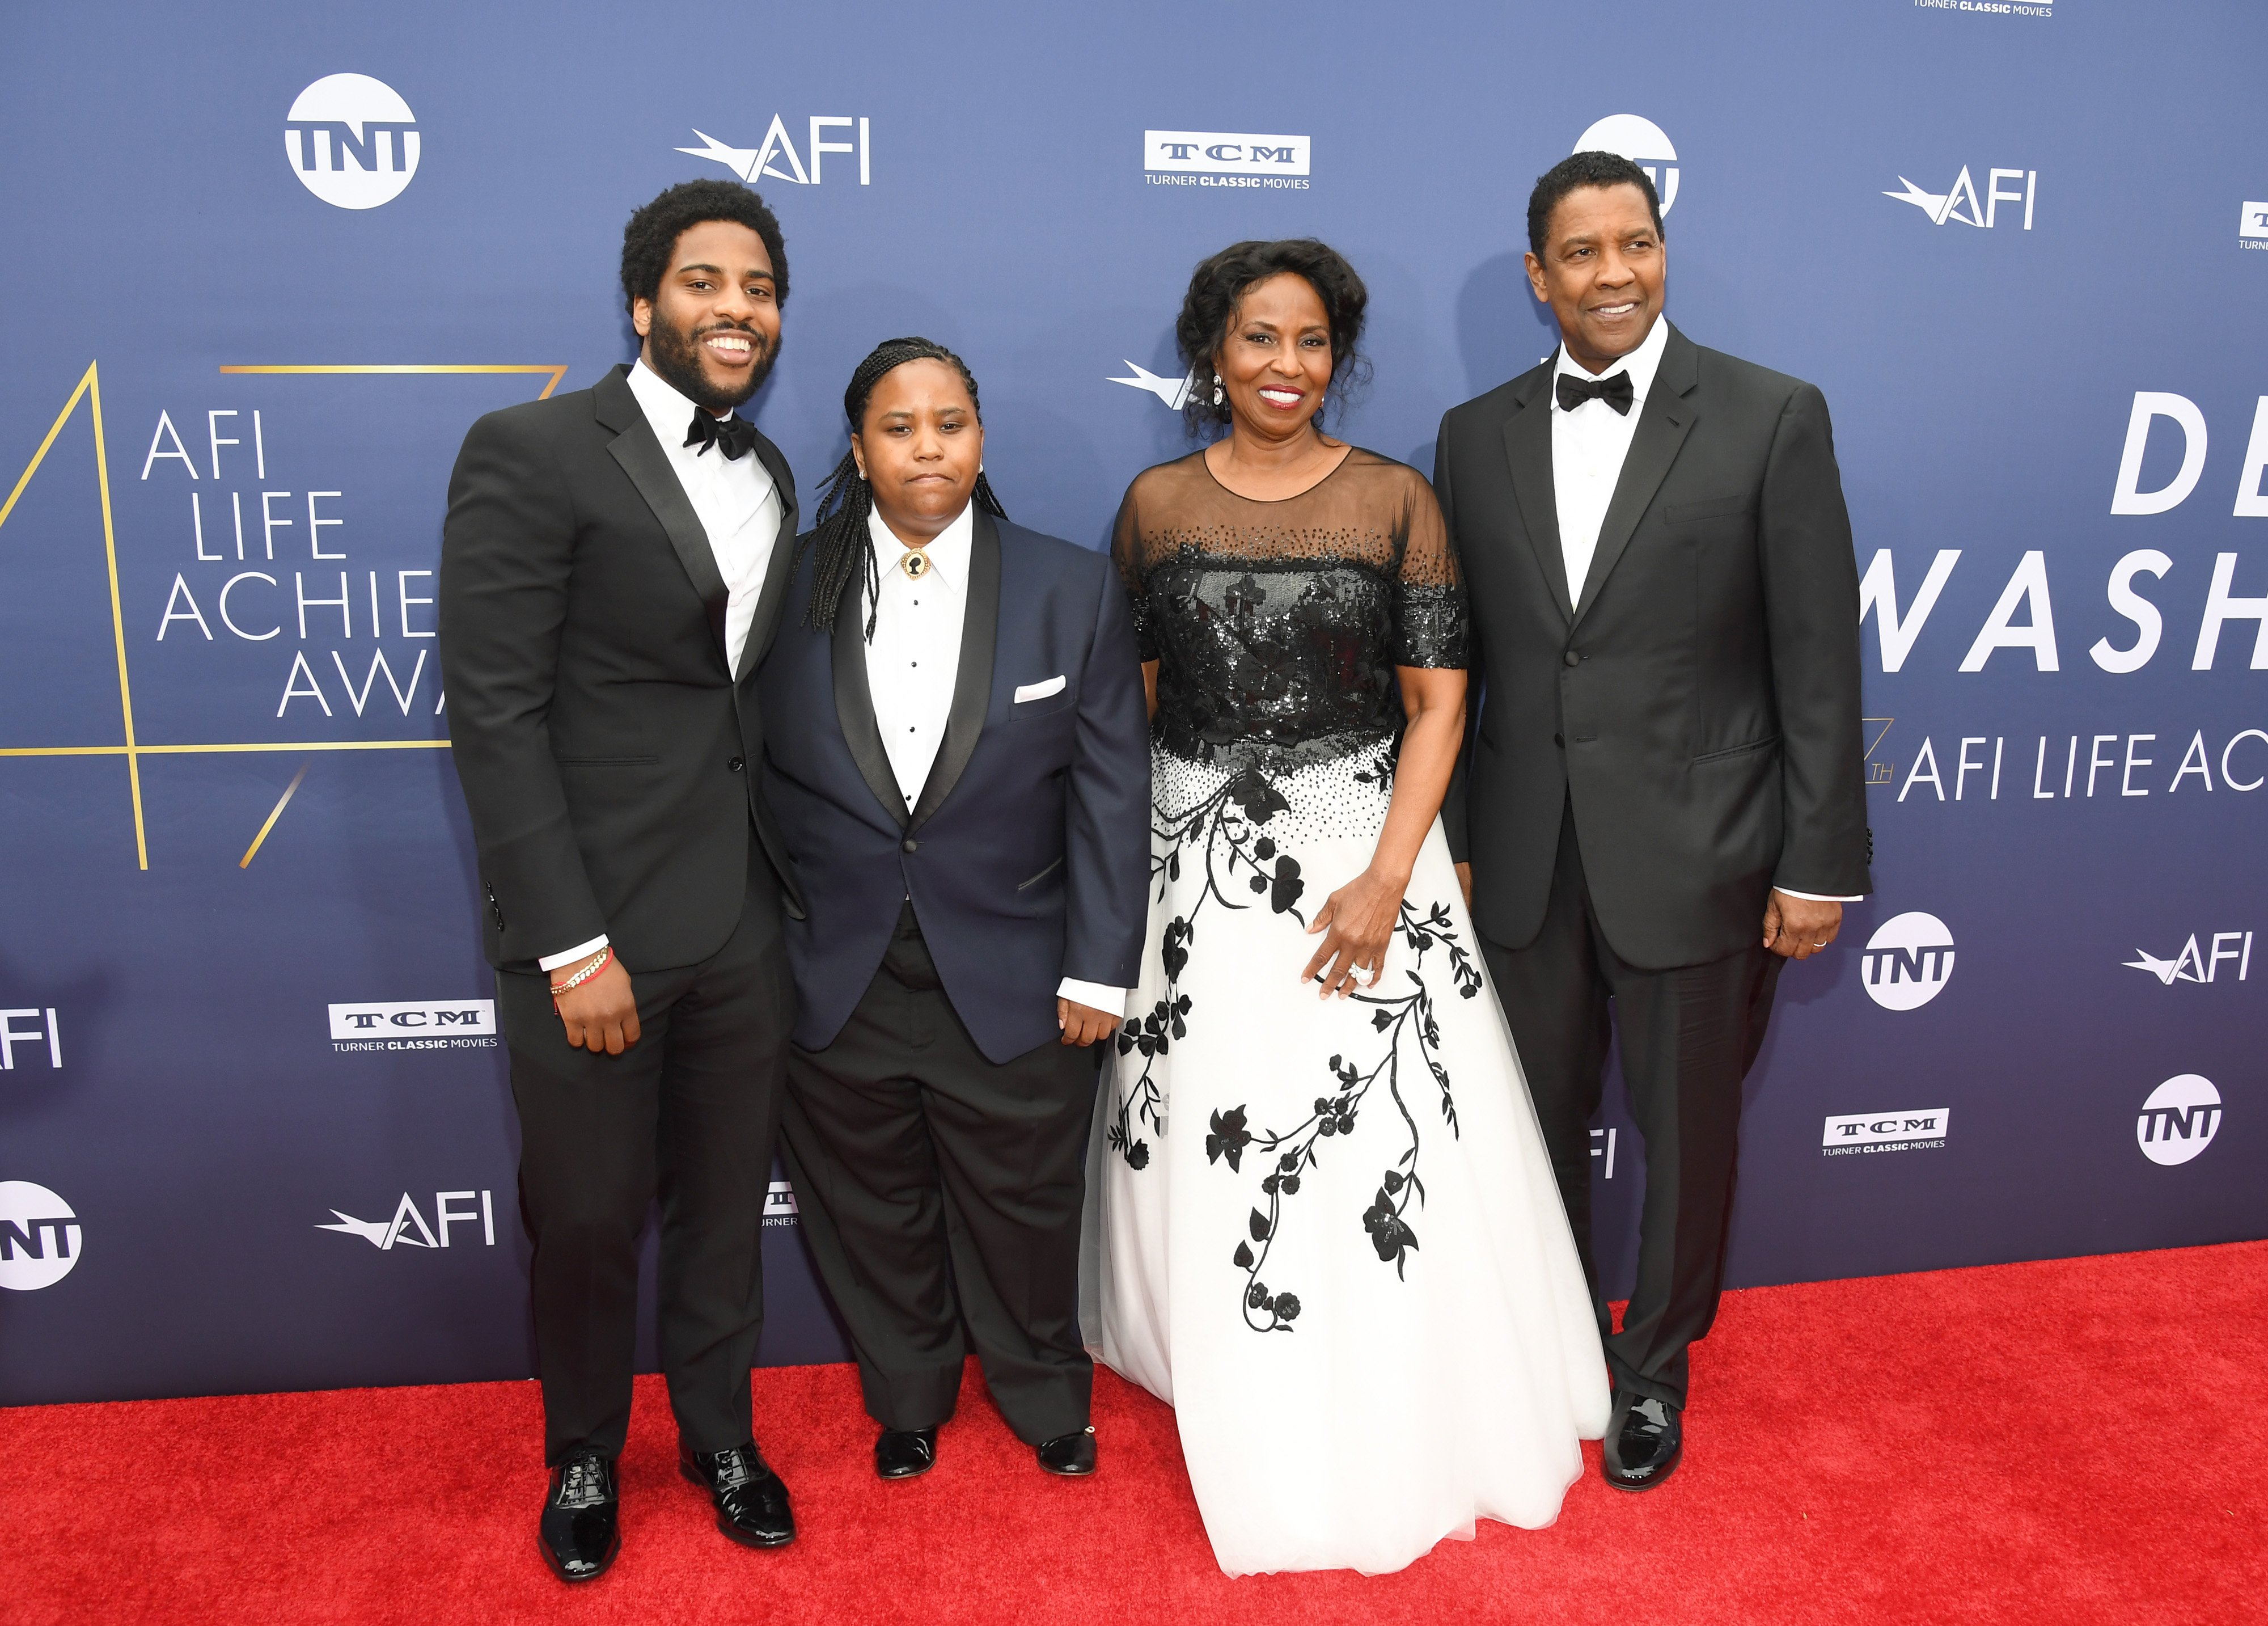 Denzel Washington is accompanied by his wife Pauletta Washington, their son Malcolm and daughter, Katia when he was honored with the 47th American Film Institute's Lifetime Achievement Award in Hollywood on June 6, 2019. | Photo: Getty Images